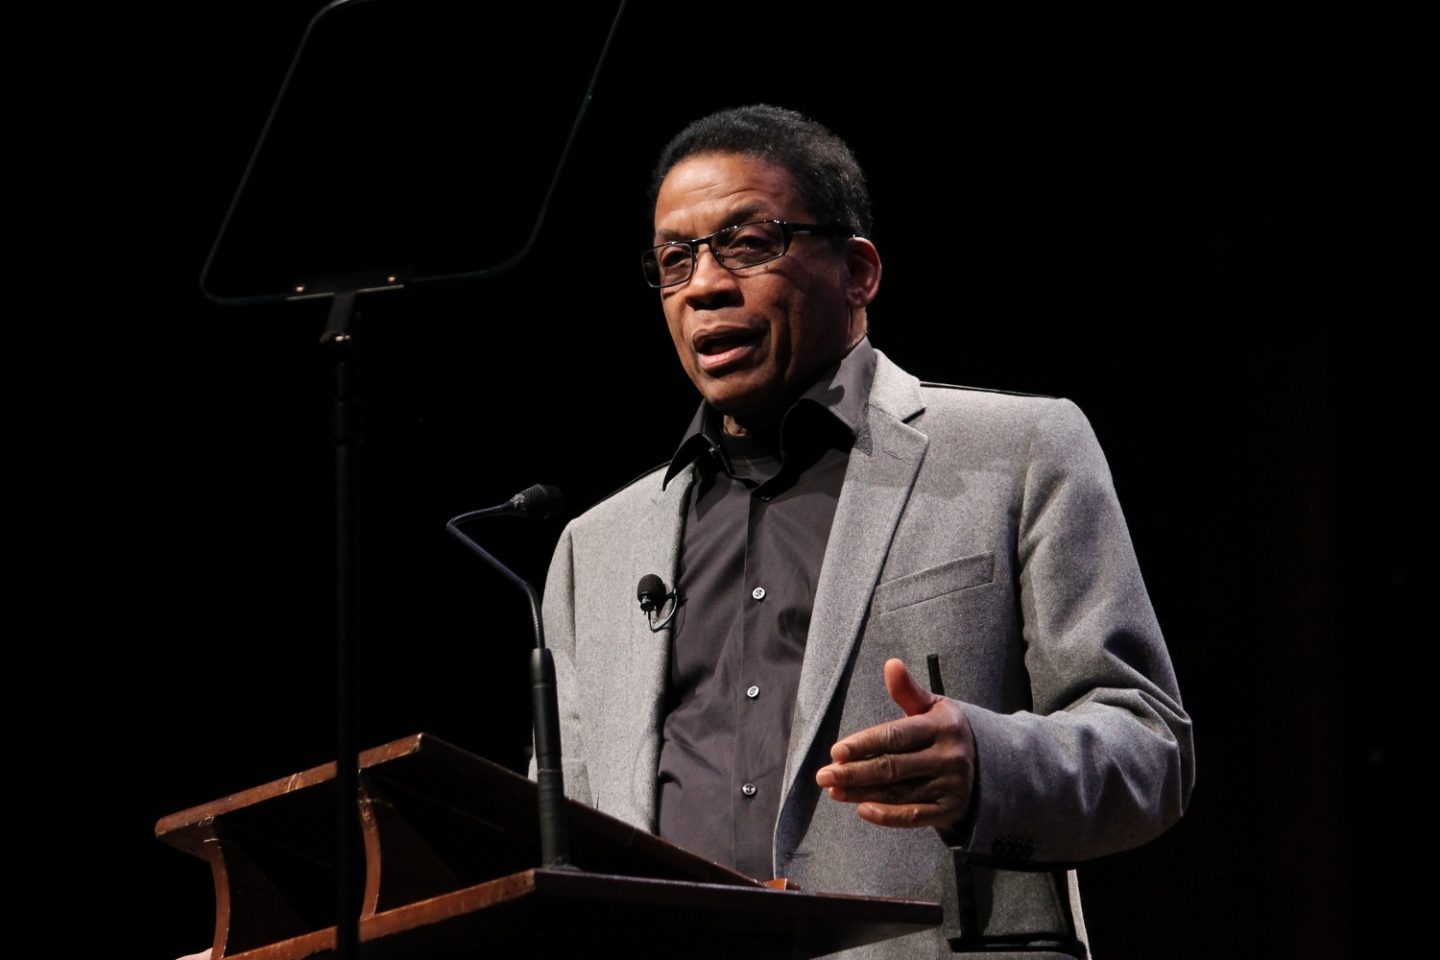 Herbie Hancock speaking in a lecture about Buddhism and Creativity